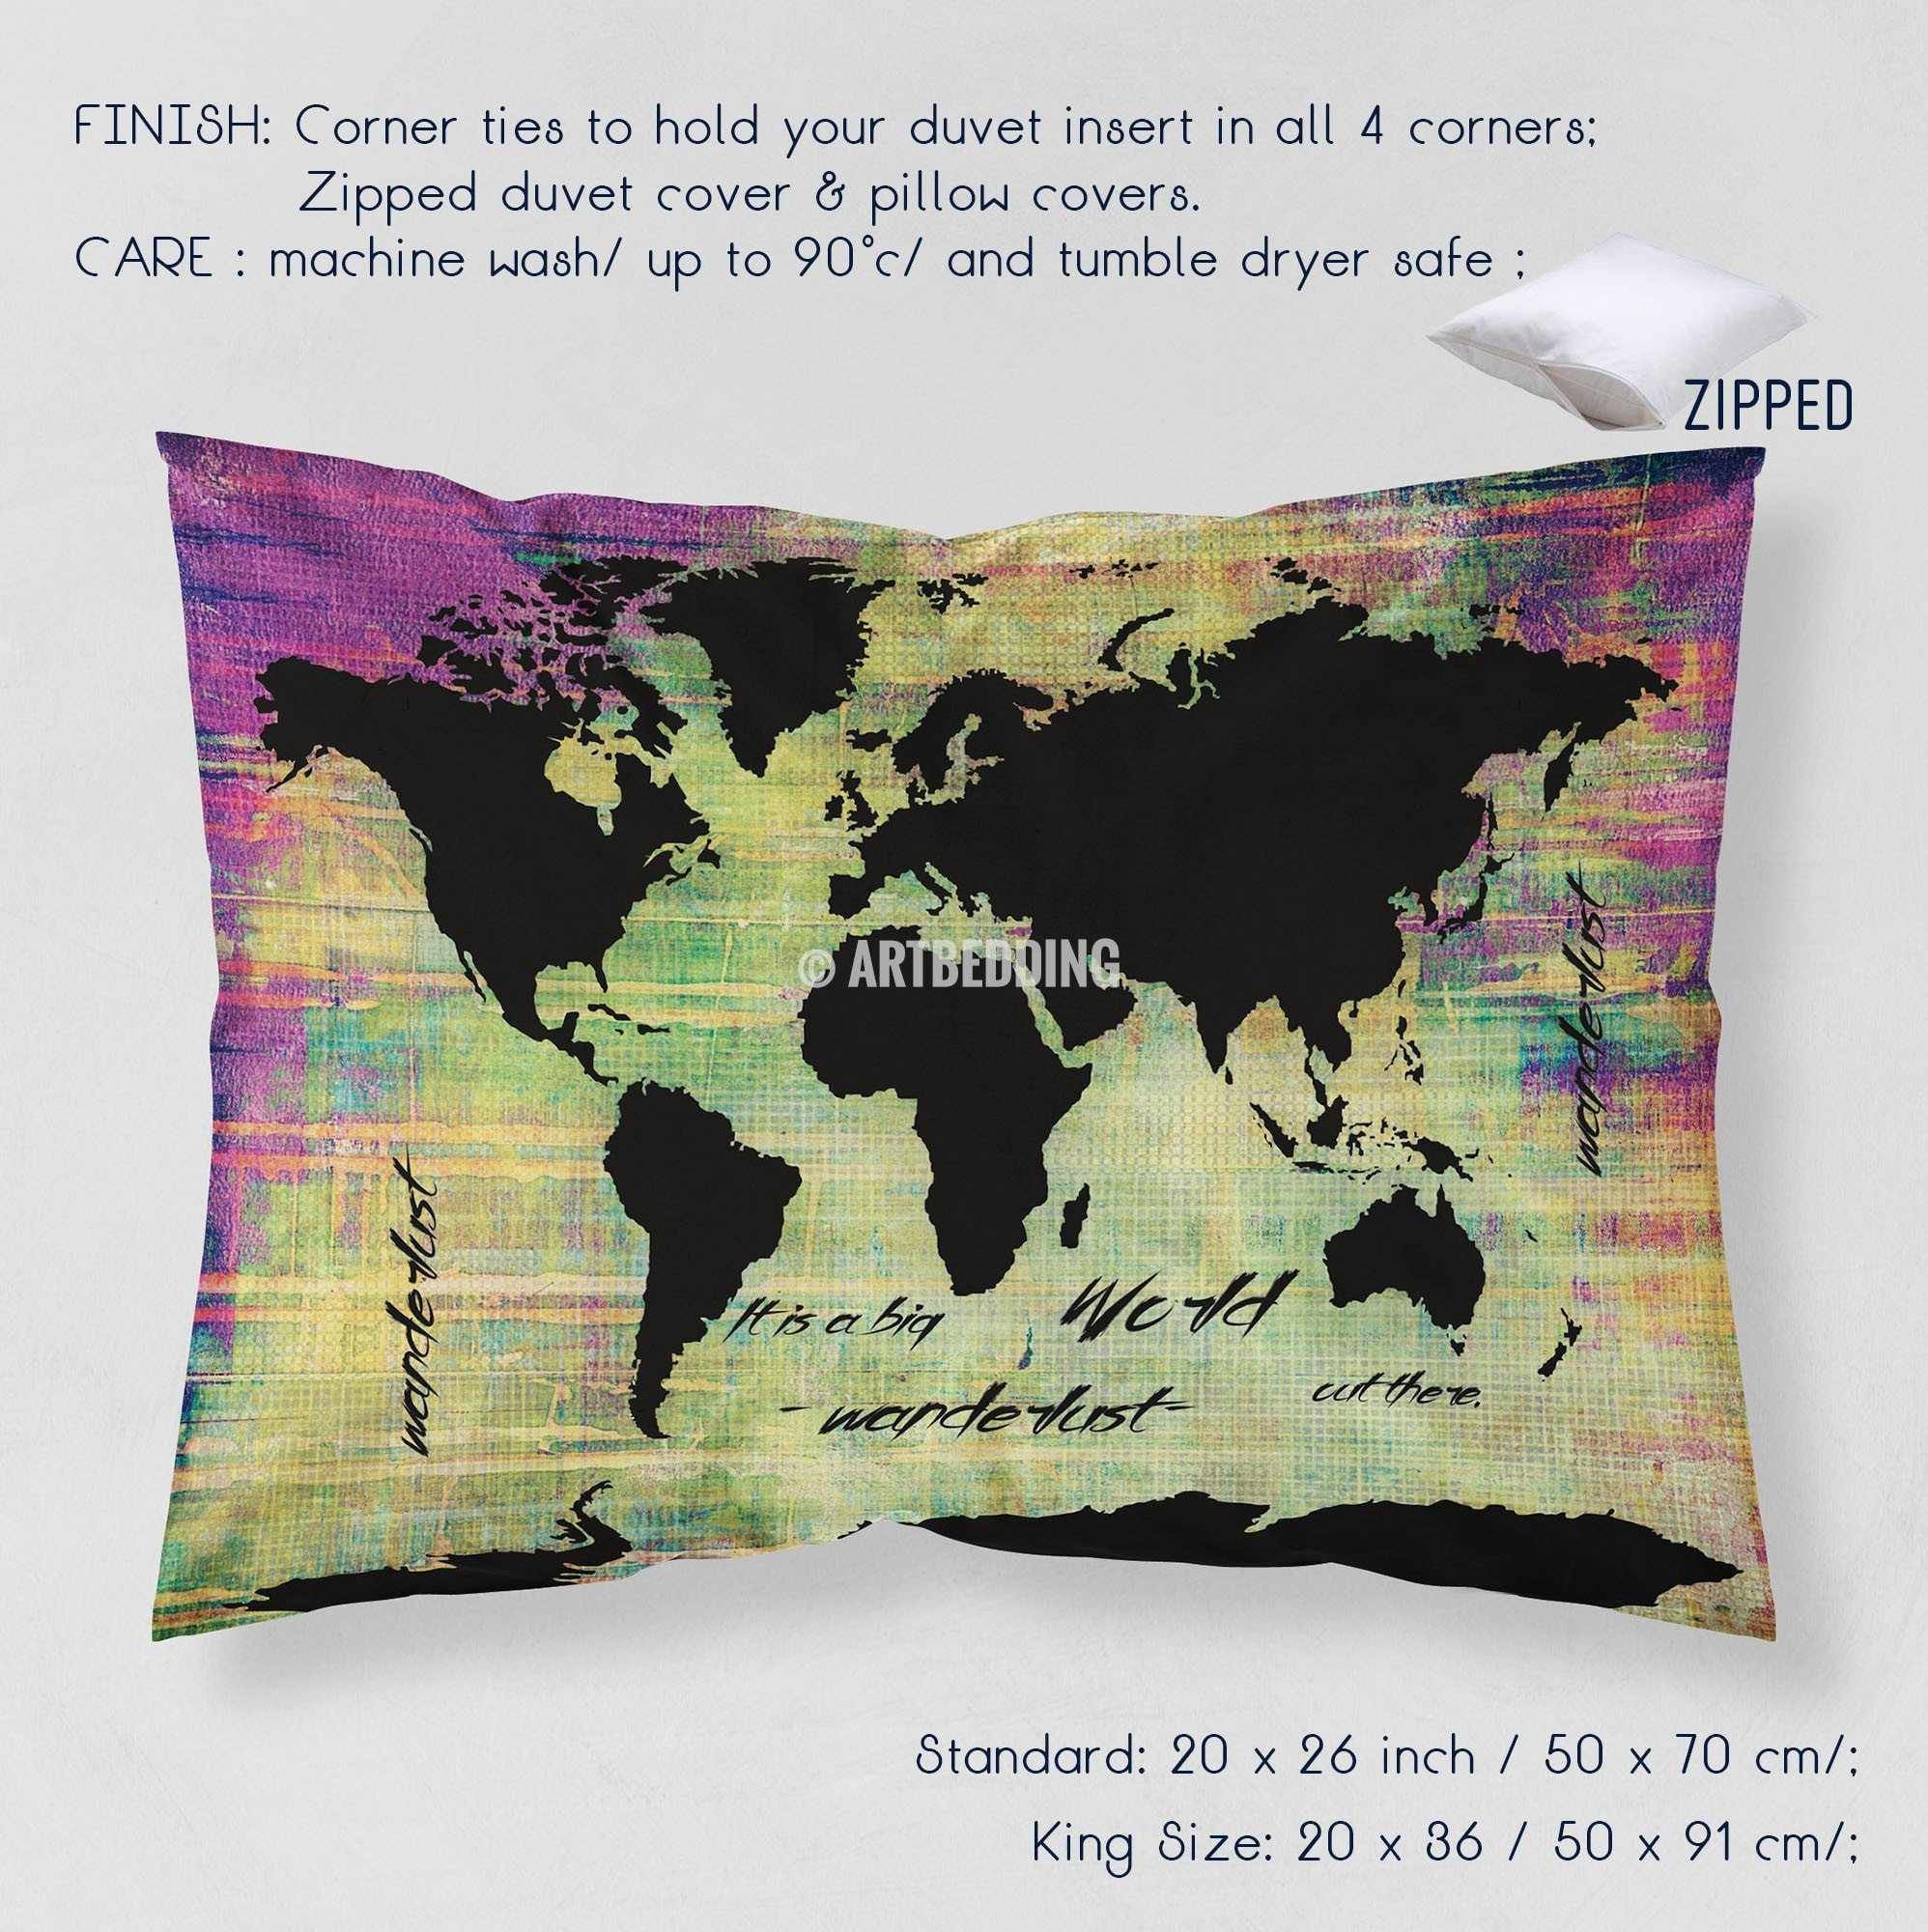 Watercolor world map beddingblack world map neon grunge duvet cover world map neon grunge print bedding world map art duvet cover set bohemian duvet gumiabroncs Image collections